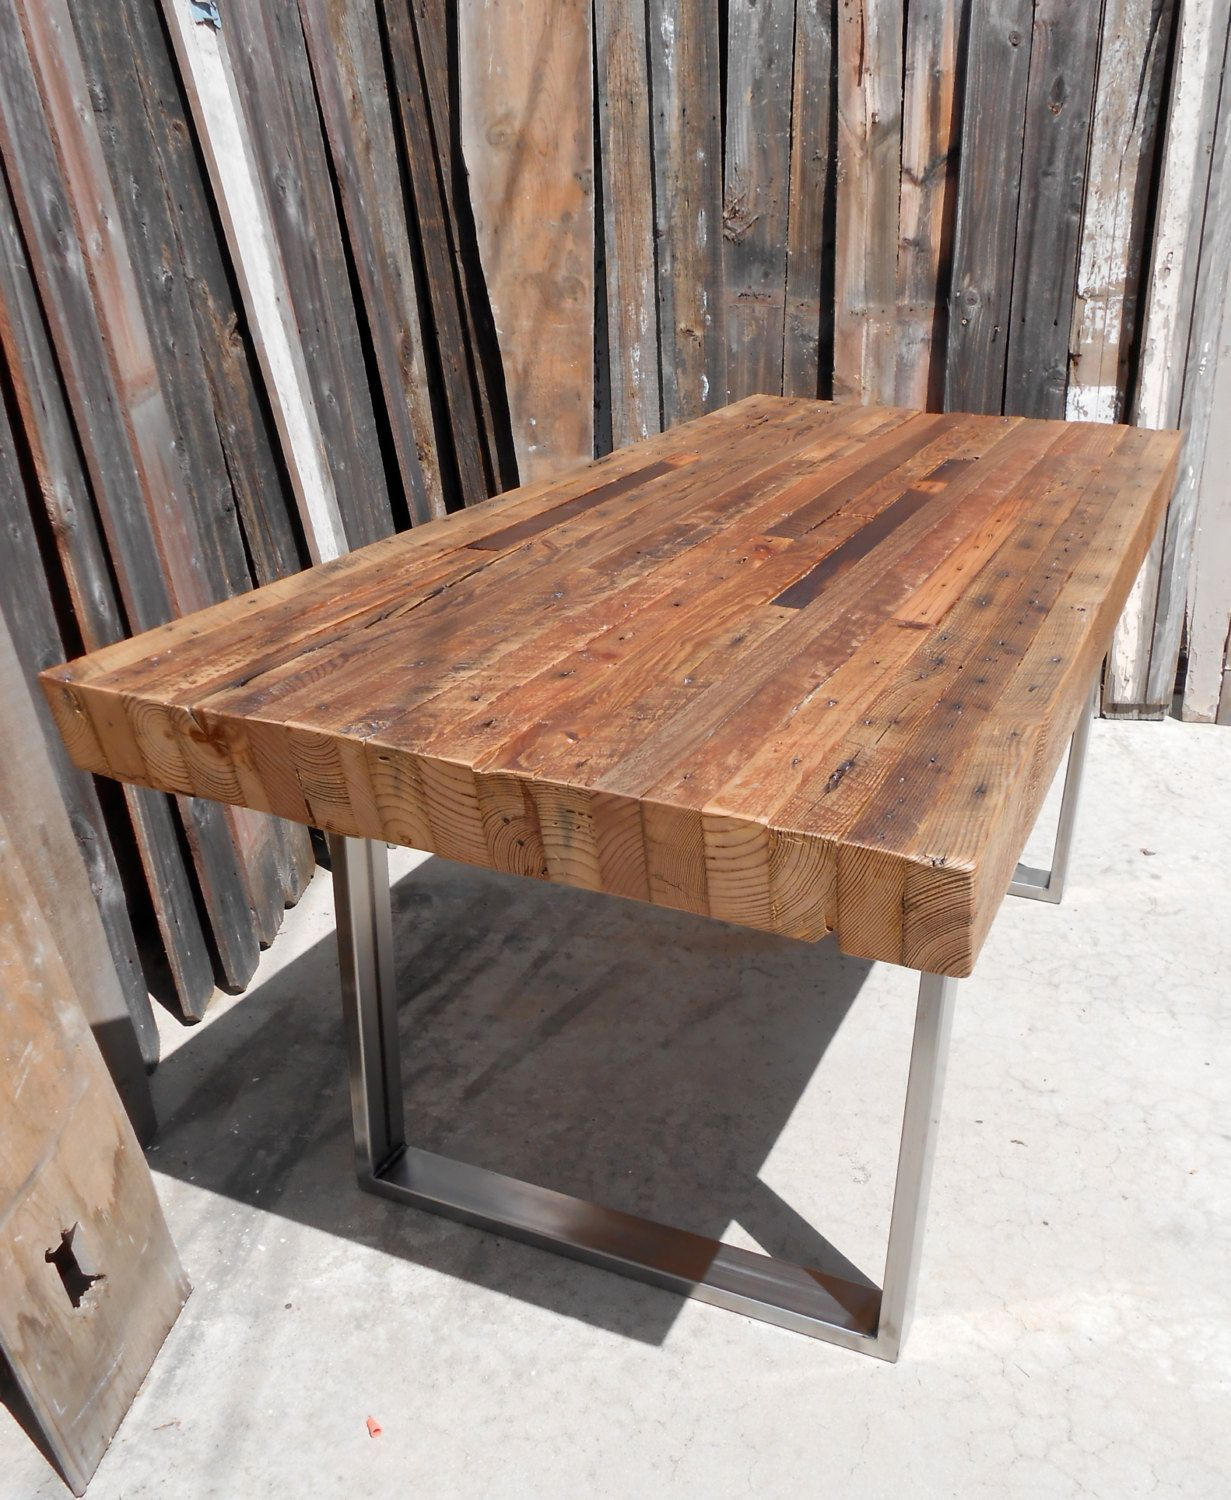 Modern Wood Dining Room Table Custom Modern Rustic Table With Steel And Barn Wooddun4Me Is The